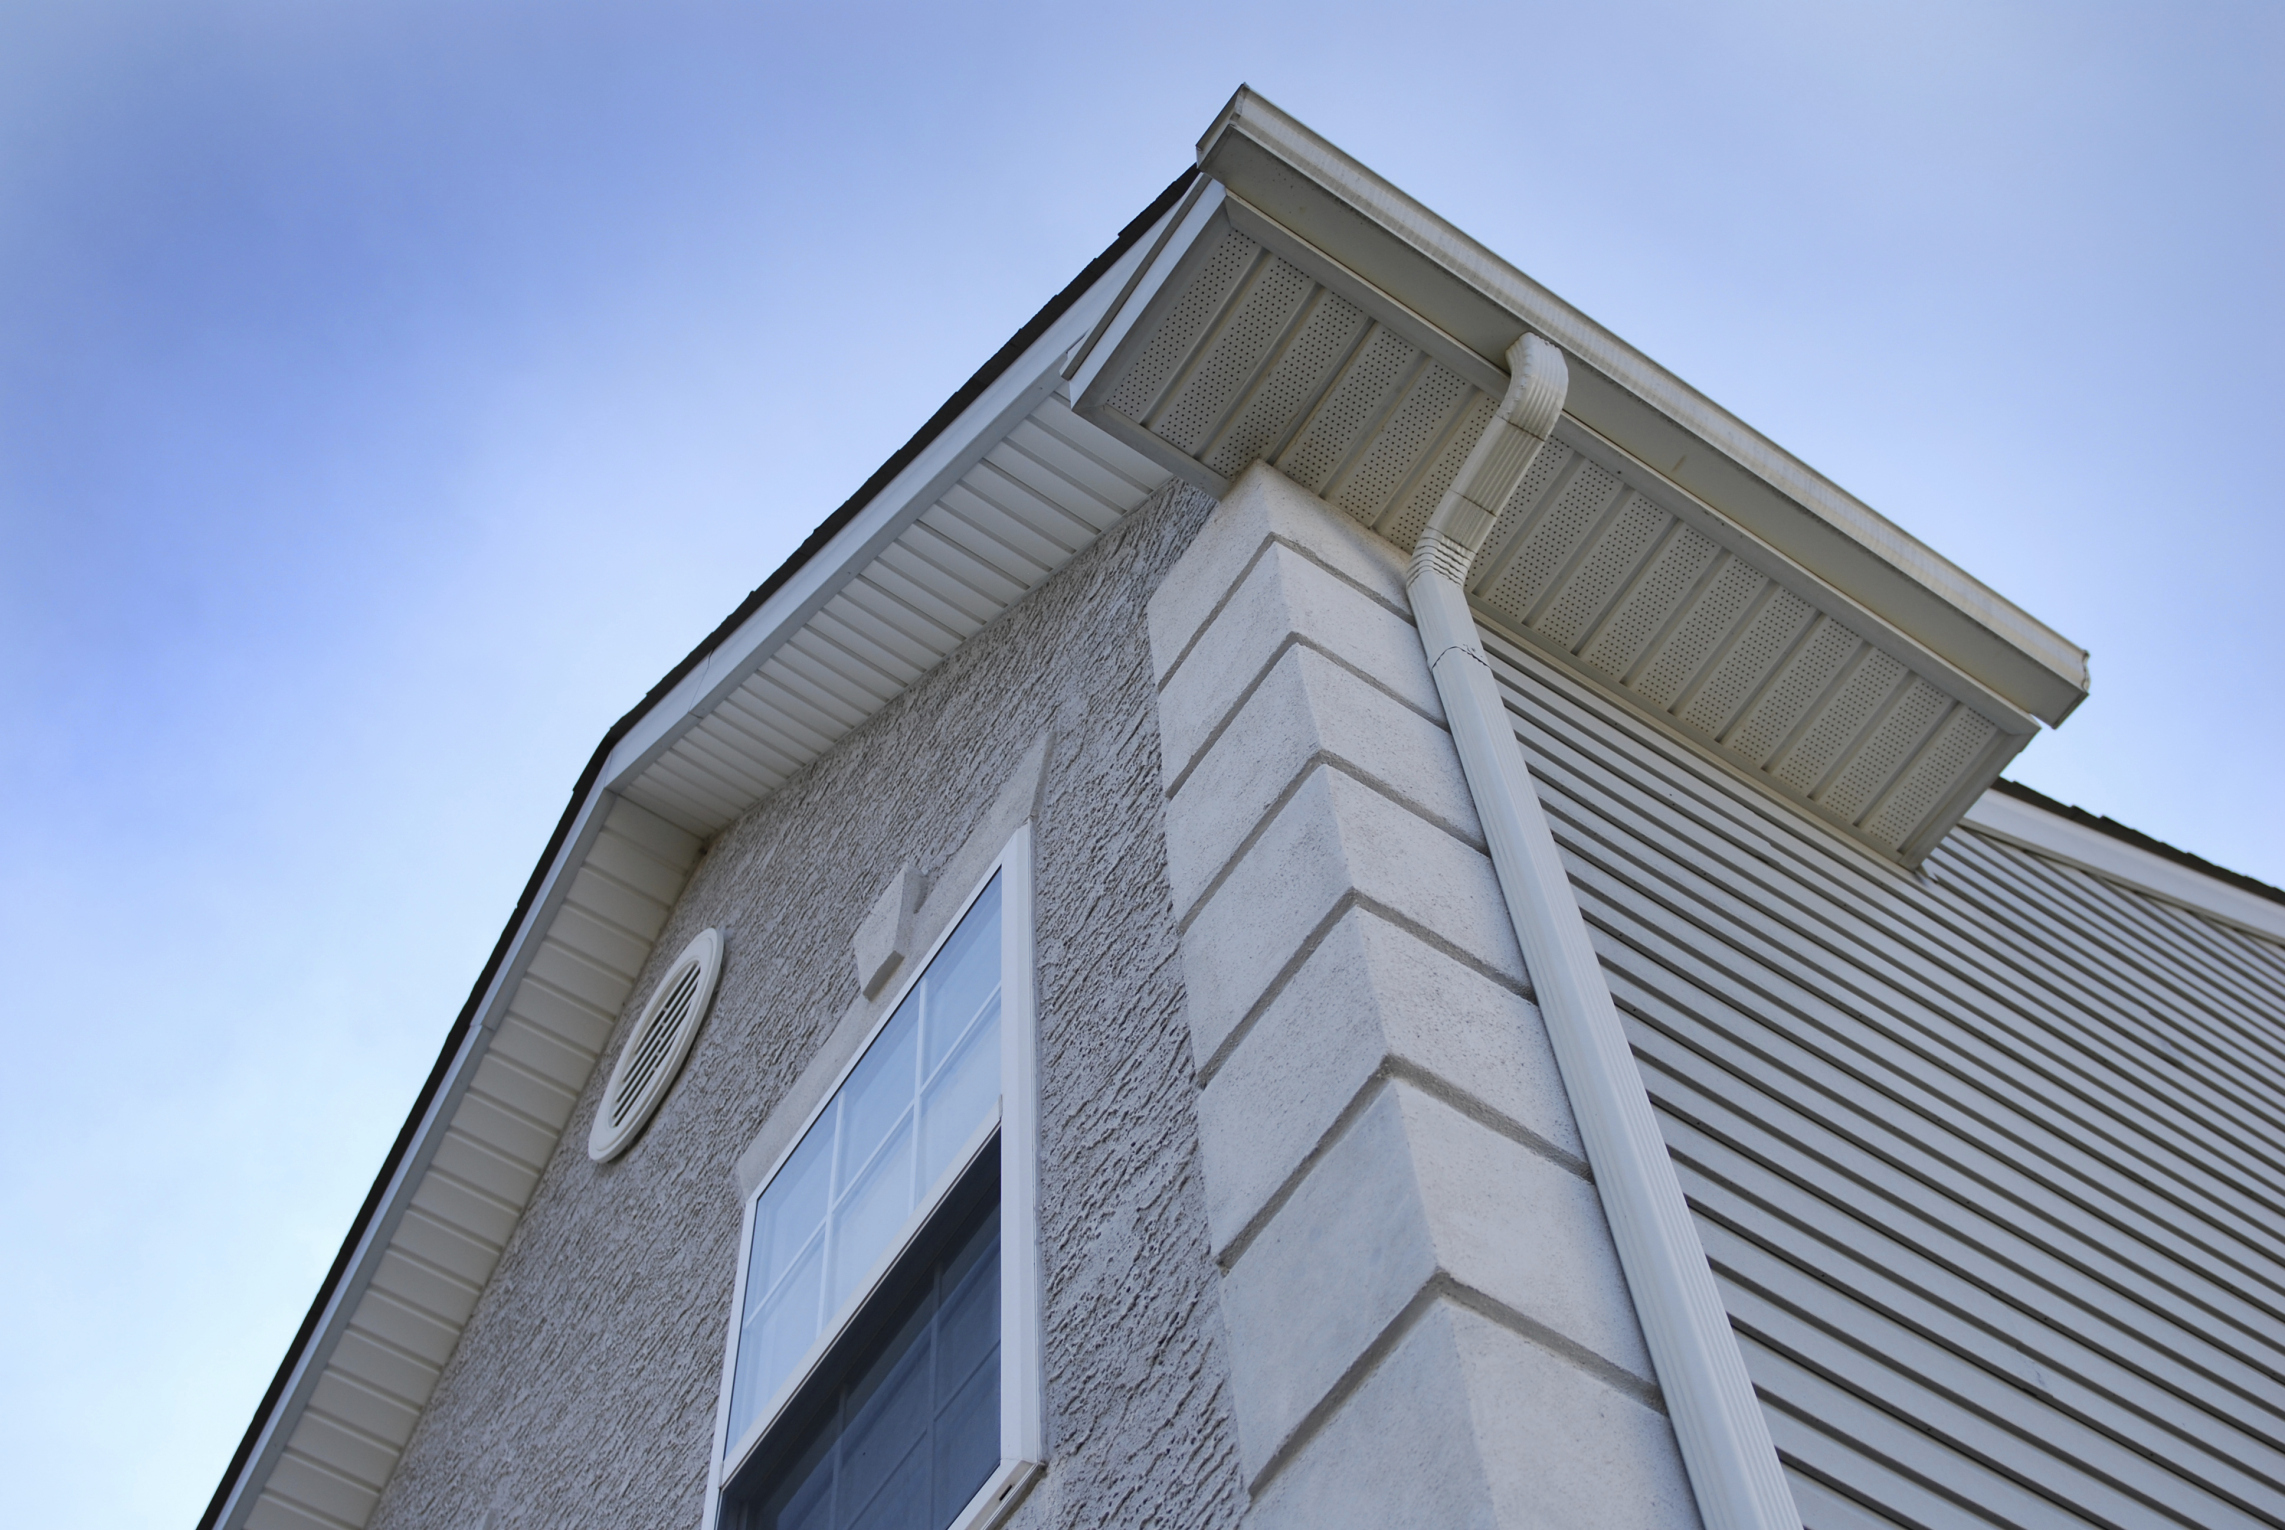 Dirty Gutter Problems? Here Are Some Homemade Solutions!